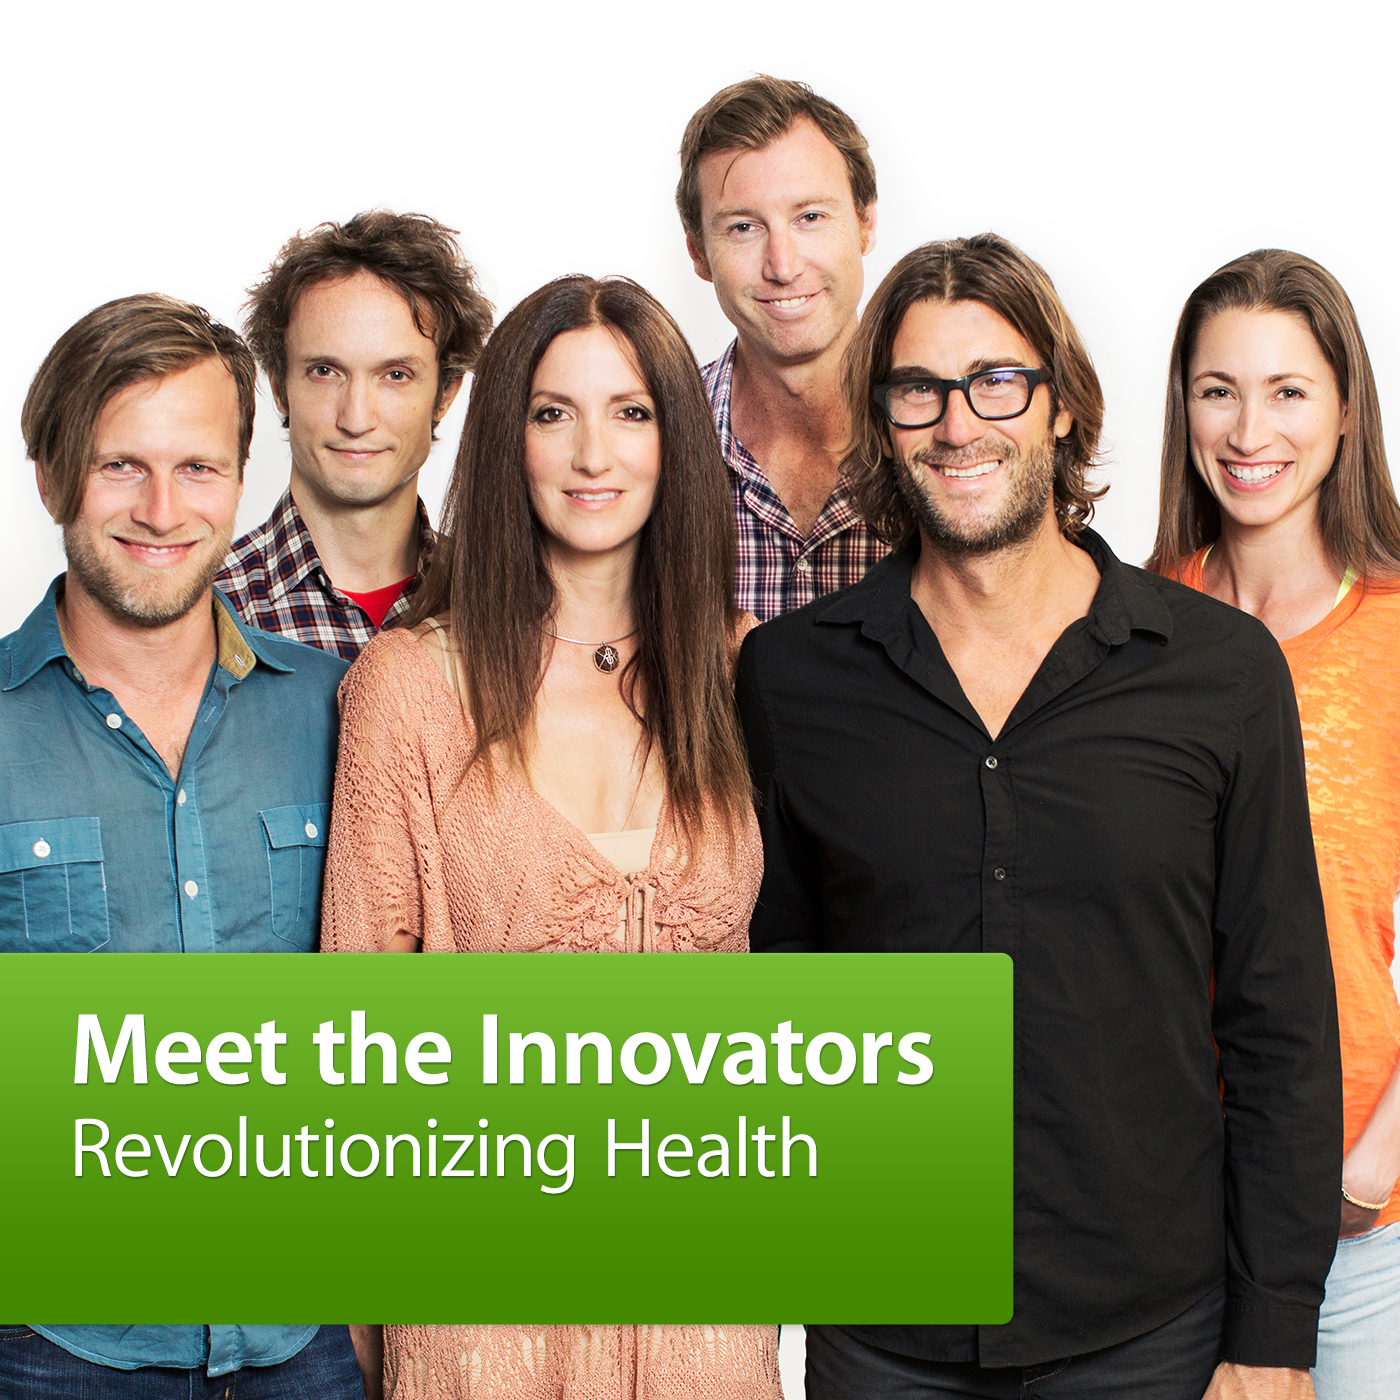 Revolutionizing Health: Meet the Innovators